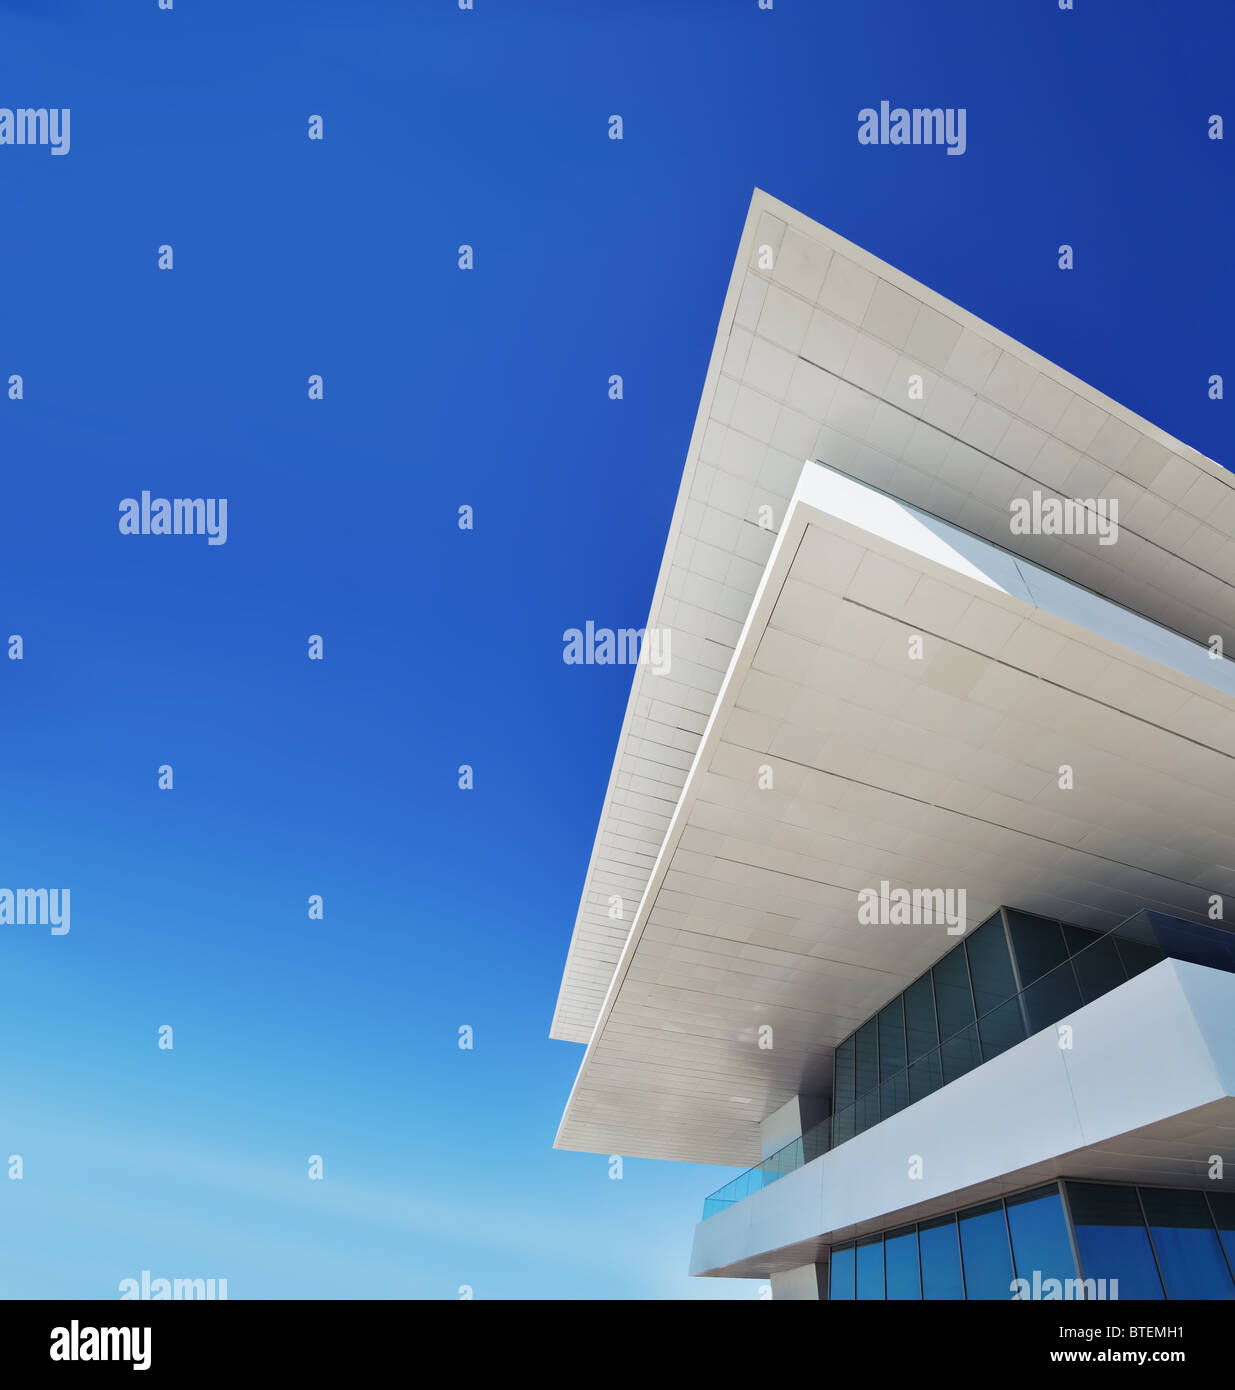 Modern architecture building detail against blue sky with copy space - Stock Image